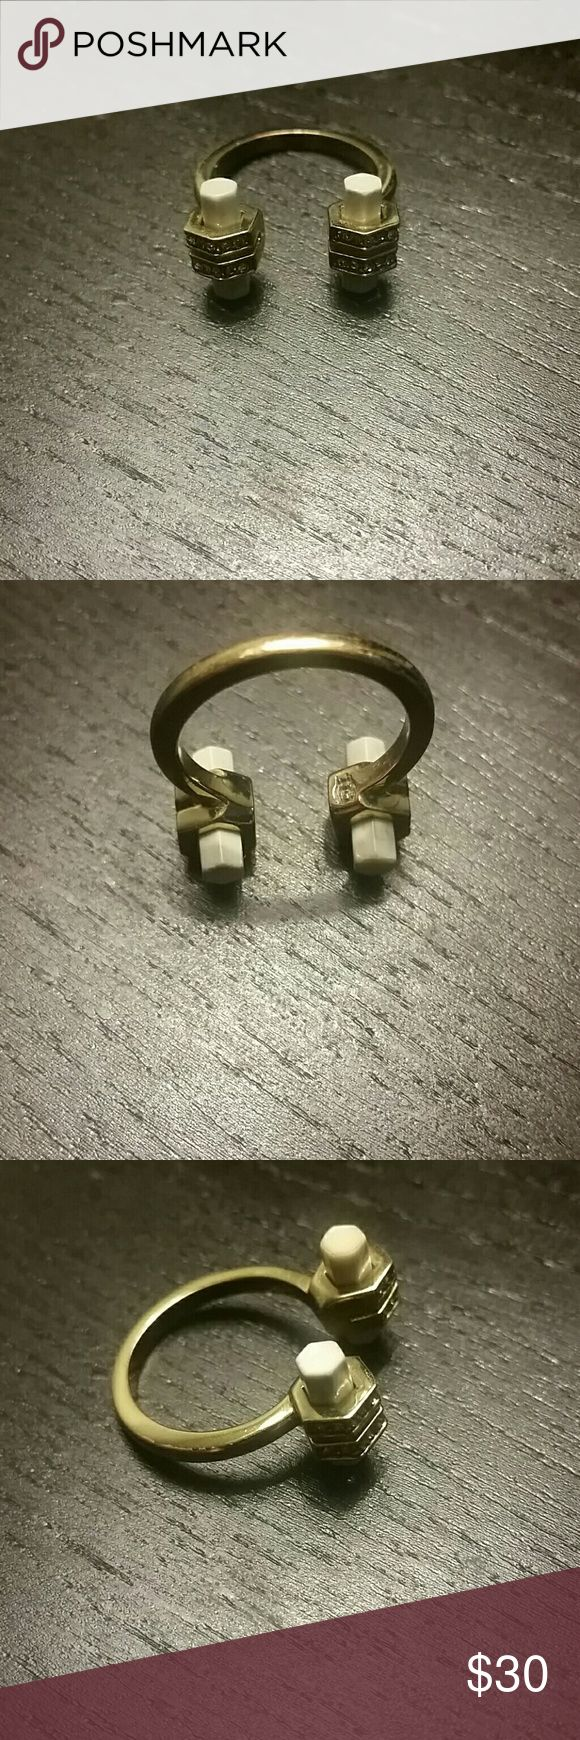 Geometric open cuff ring Adjustable size approximately size 7/8 Slight discoloration from normal wear  Costume jewelry House of Harlow 1960 Jewelry Rings